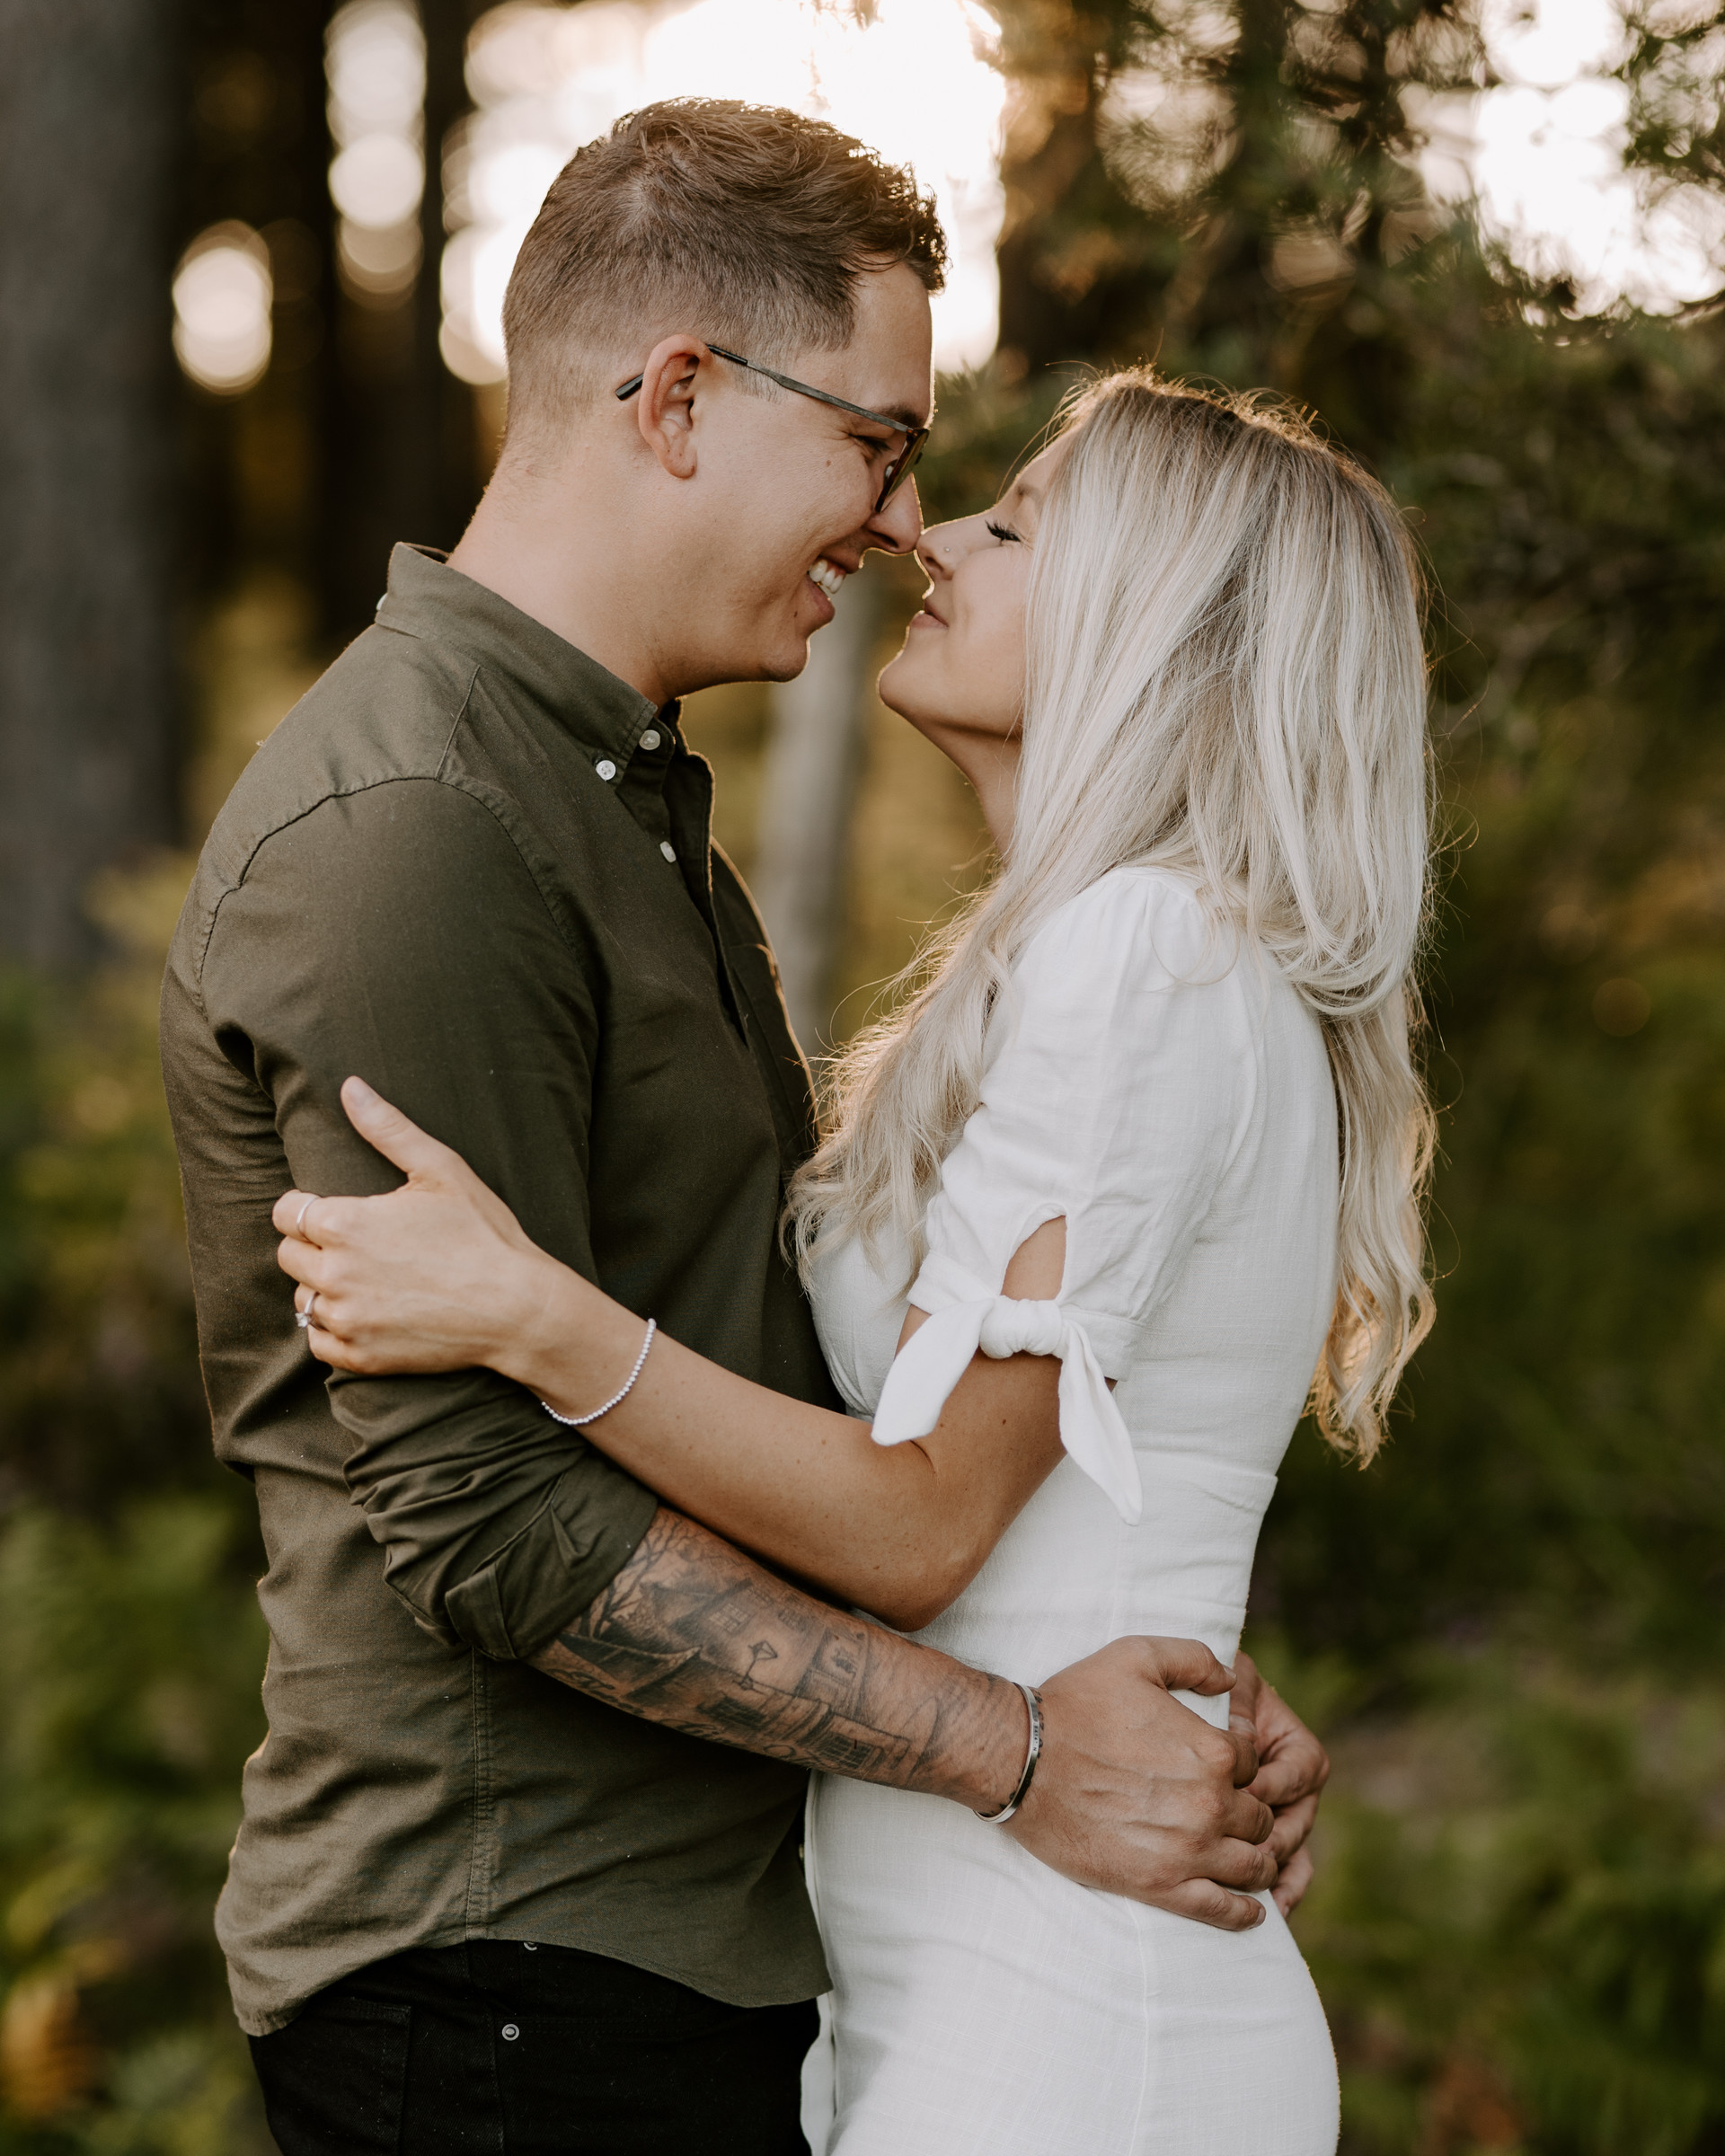 Sian & Mike | Couple Session-020.jpg